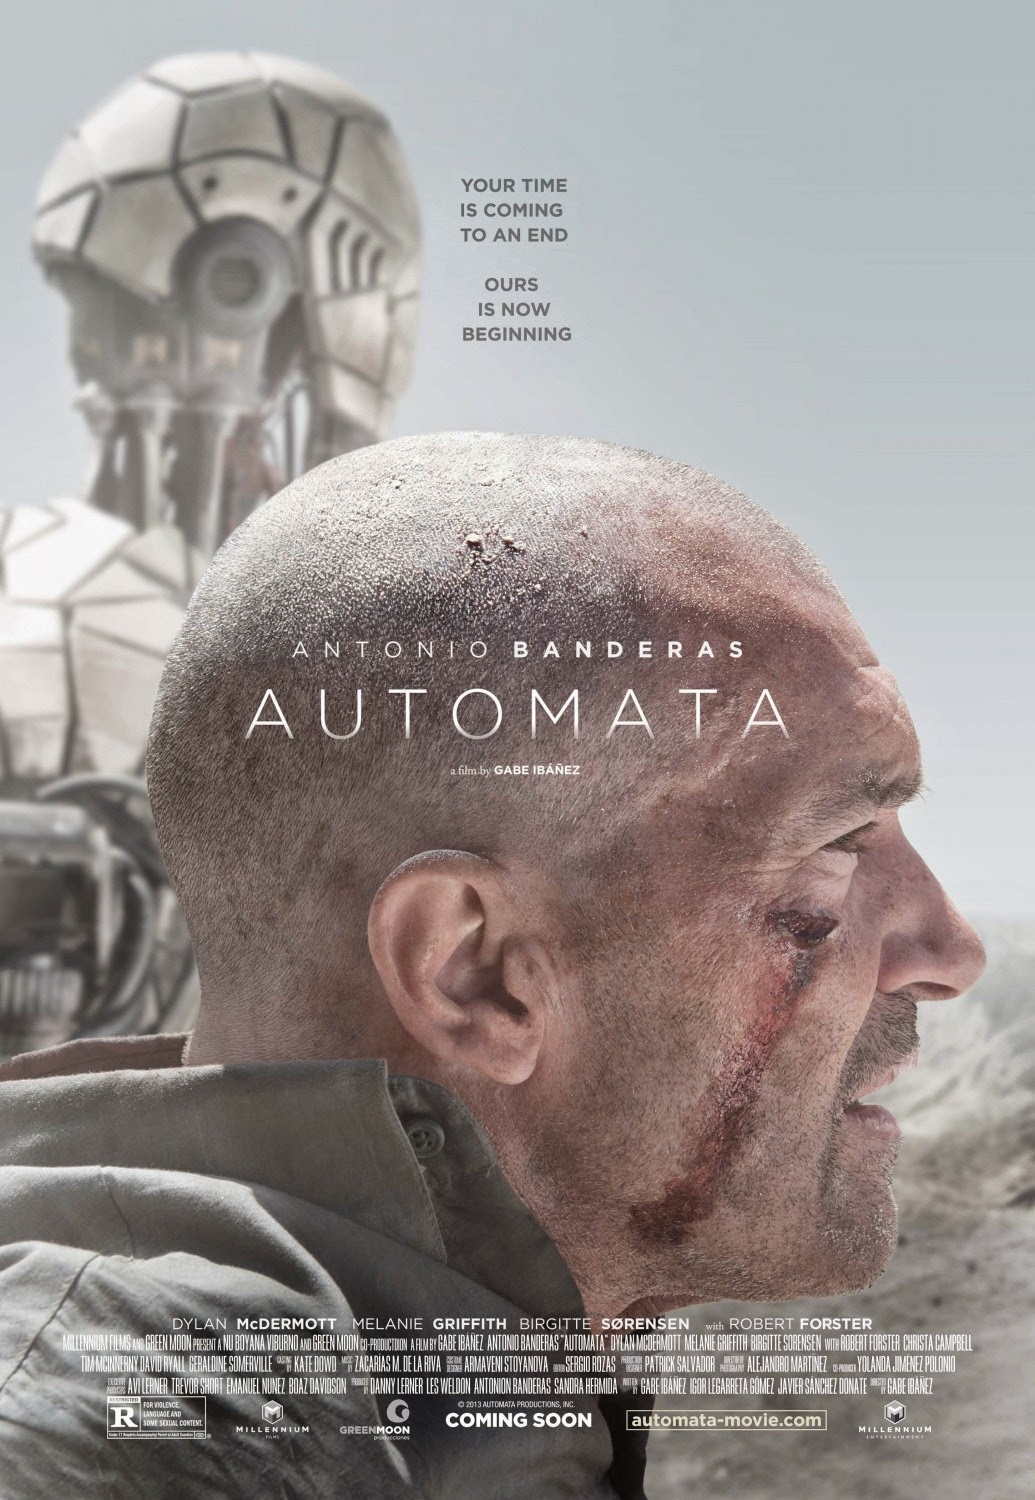 http://scifiempire.net/wordpress/wp-content/uploads/2014/08/Aut%C3%B3mata-preview-movie-poster-starring-Antonio-Banderas.jpg